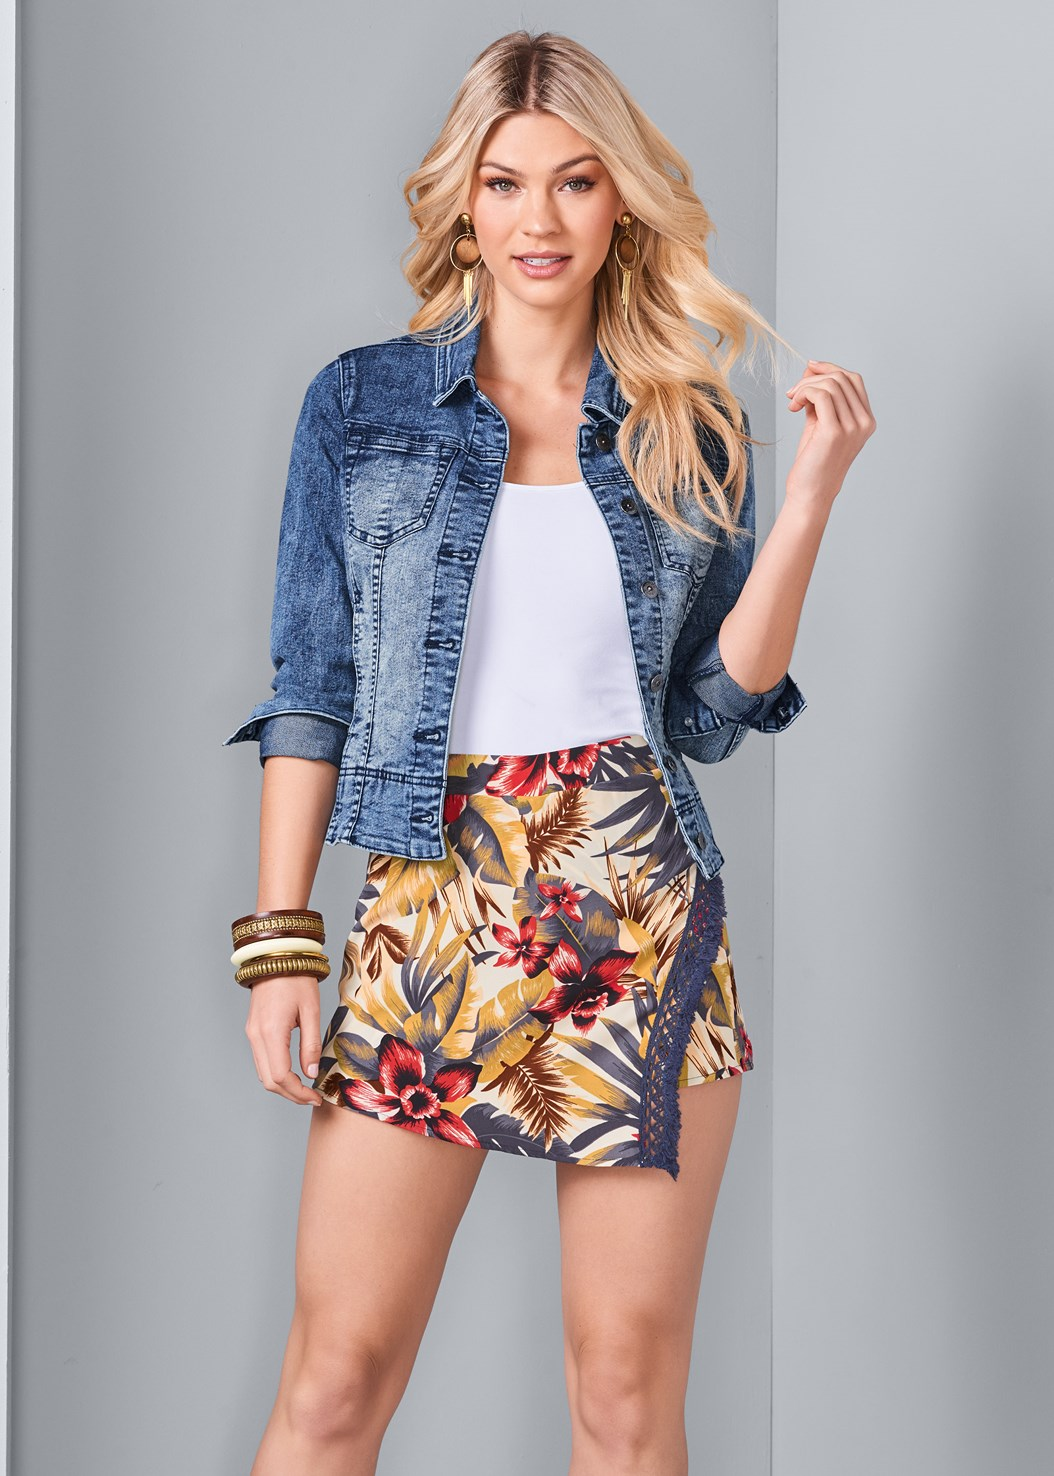 Tropical Print Skort,Basic Cami Two Pack,Jean Jacket,High Heel Strappy Sandals